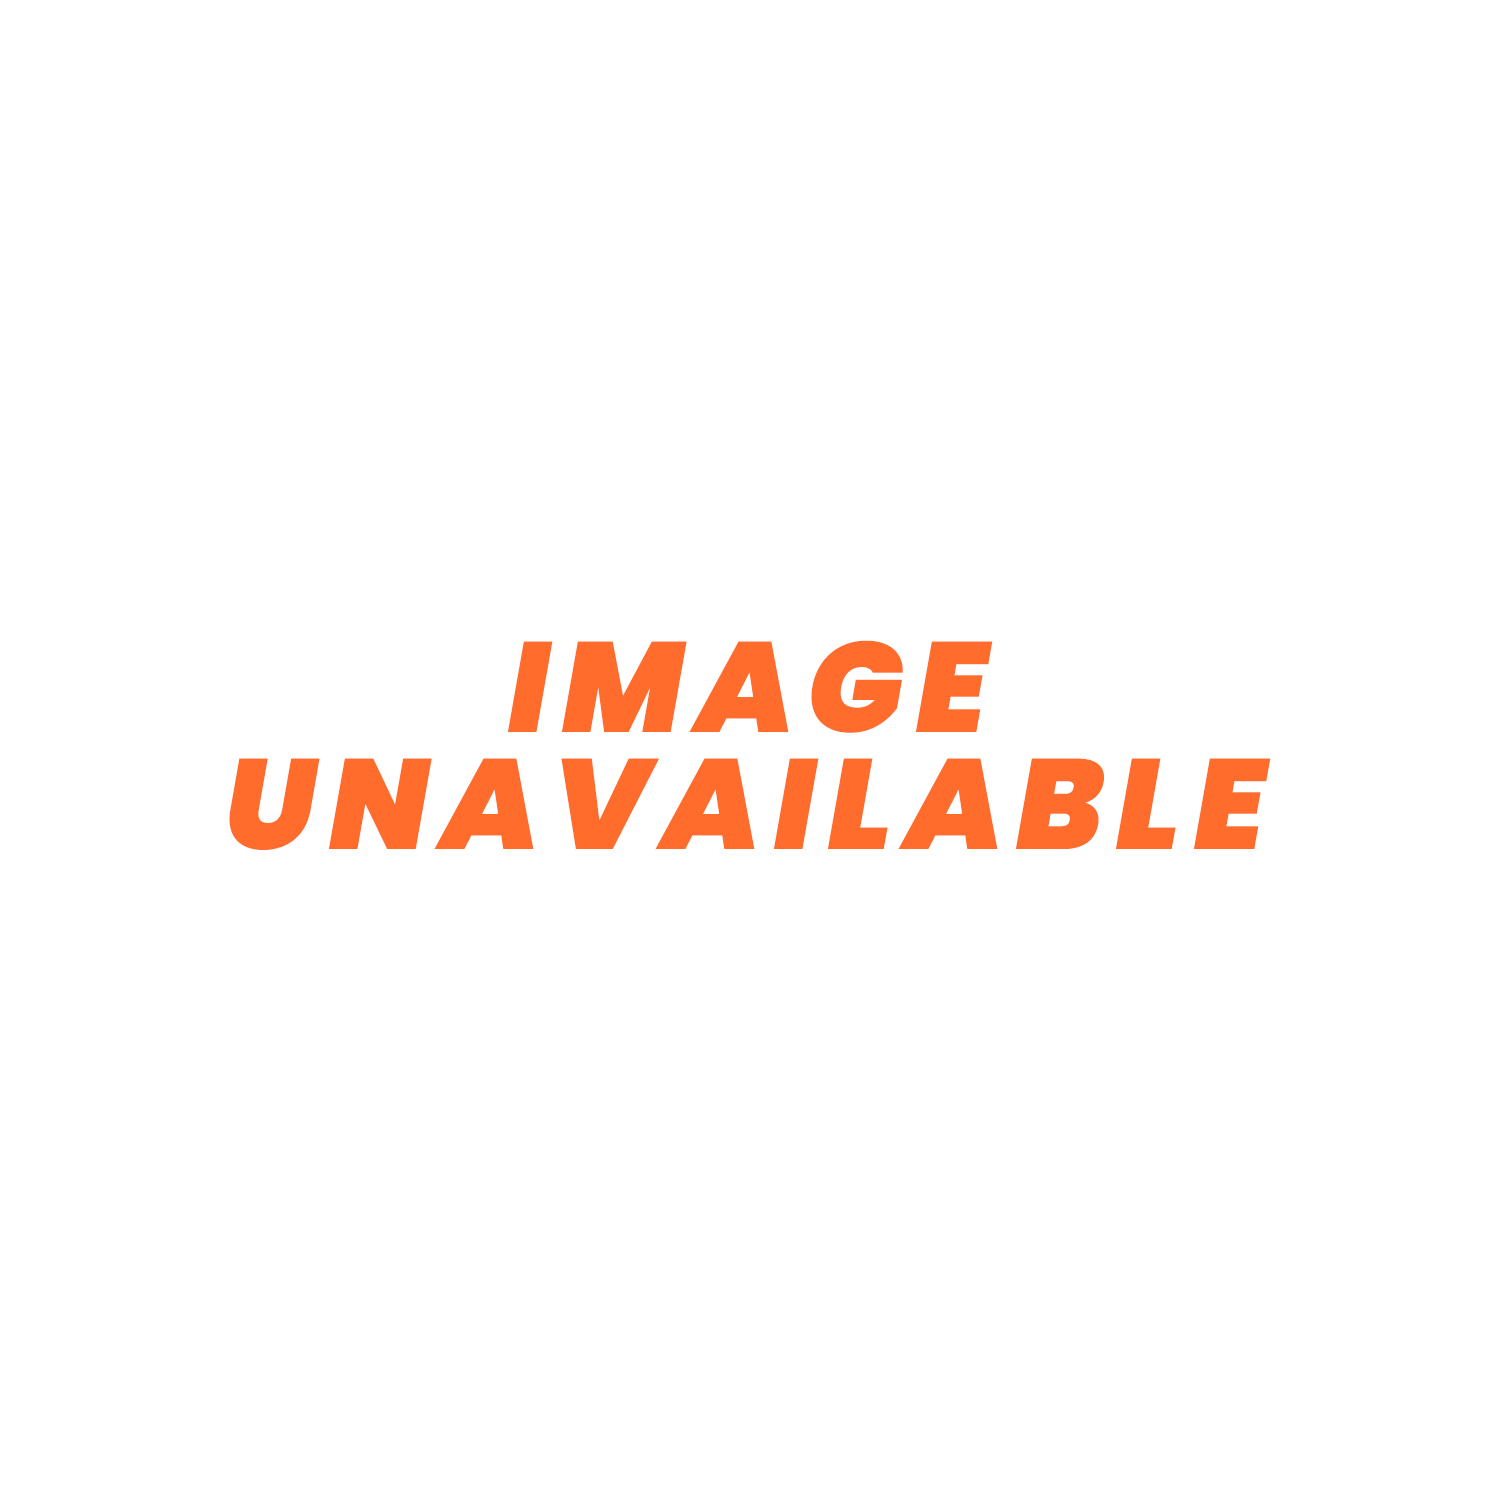 Sanden SD5H09 5074 82cc Compressor Poly-V 5 Rib 120mm 12v